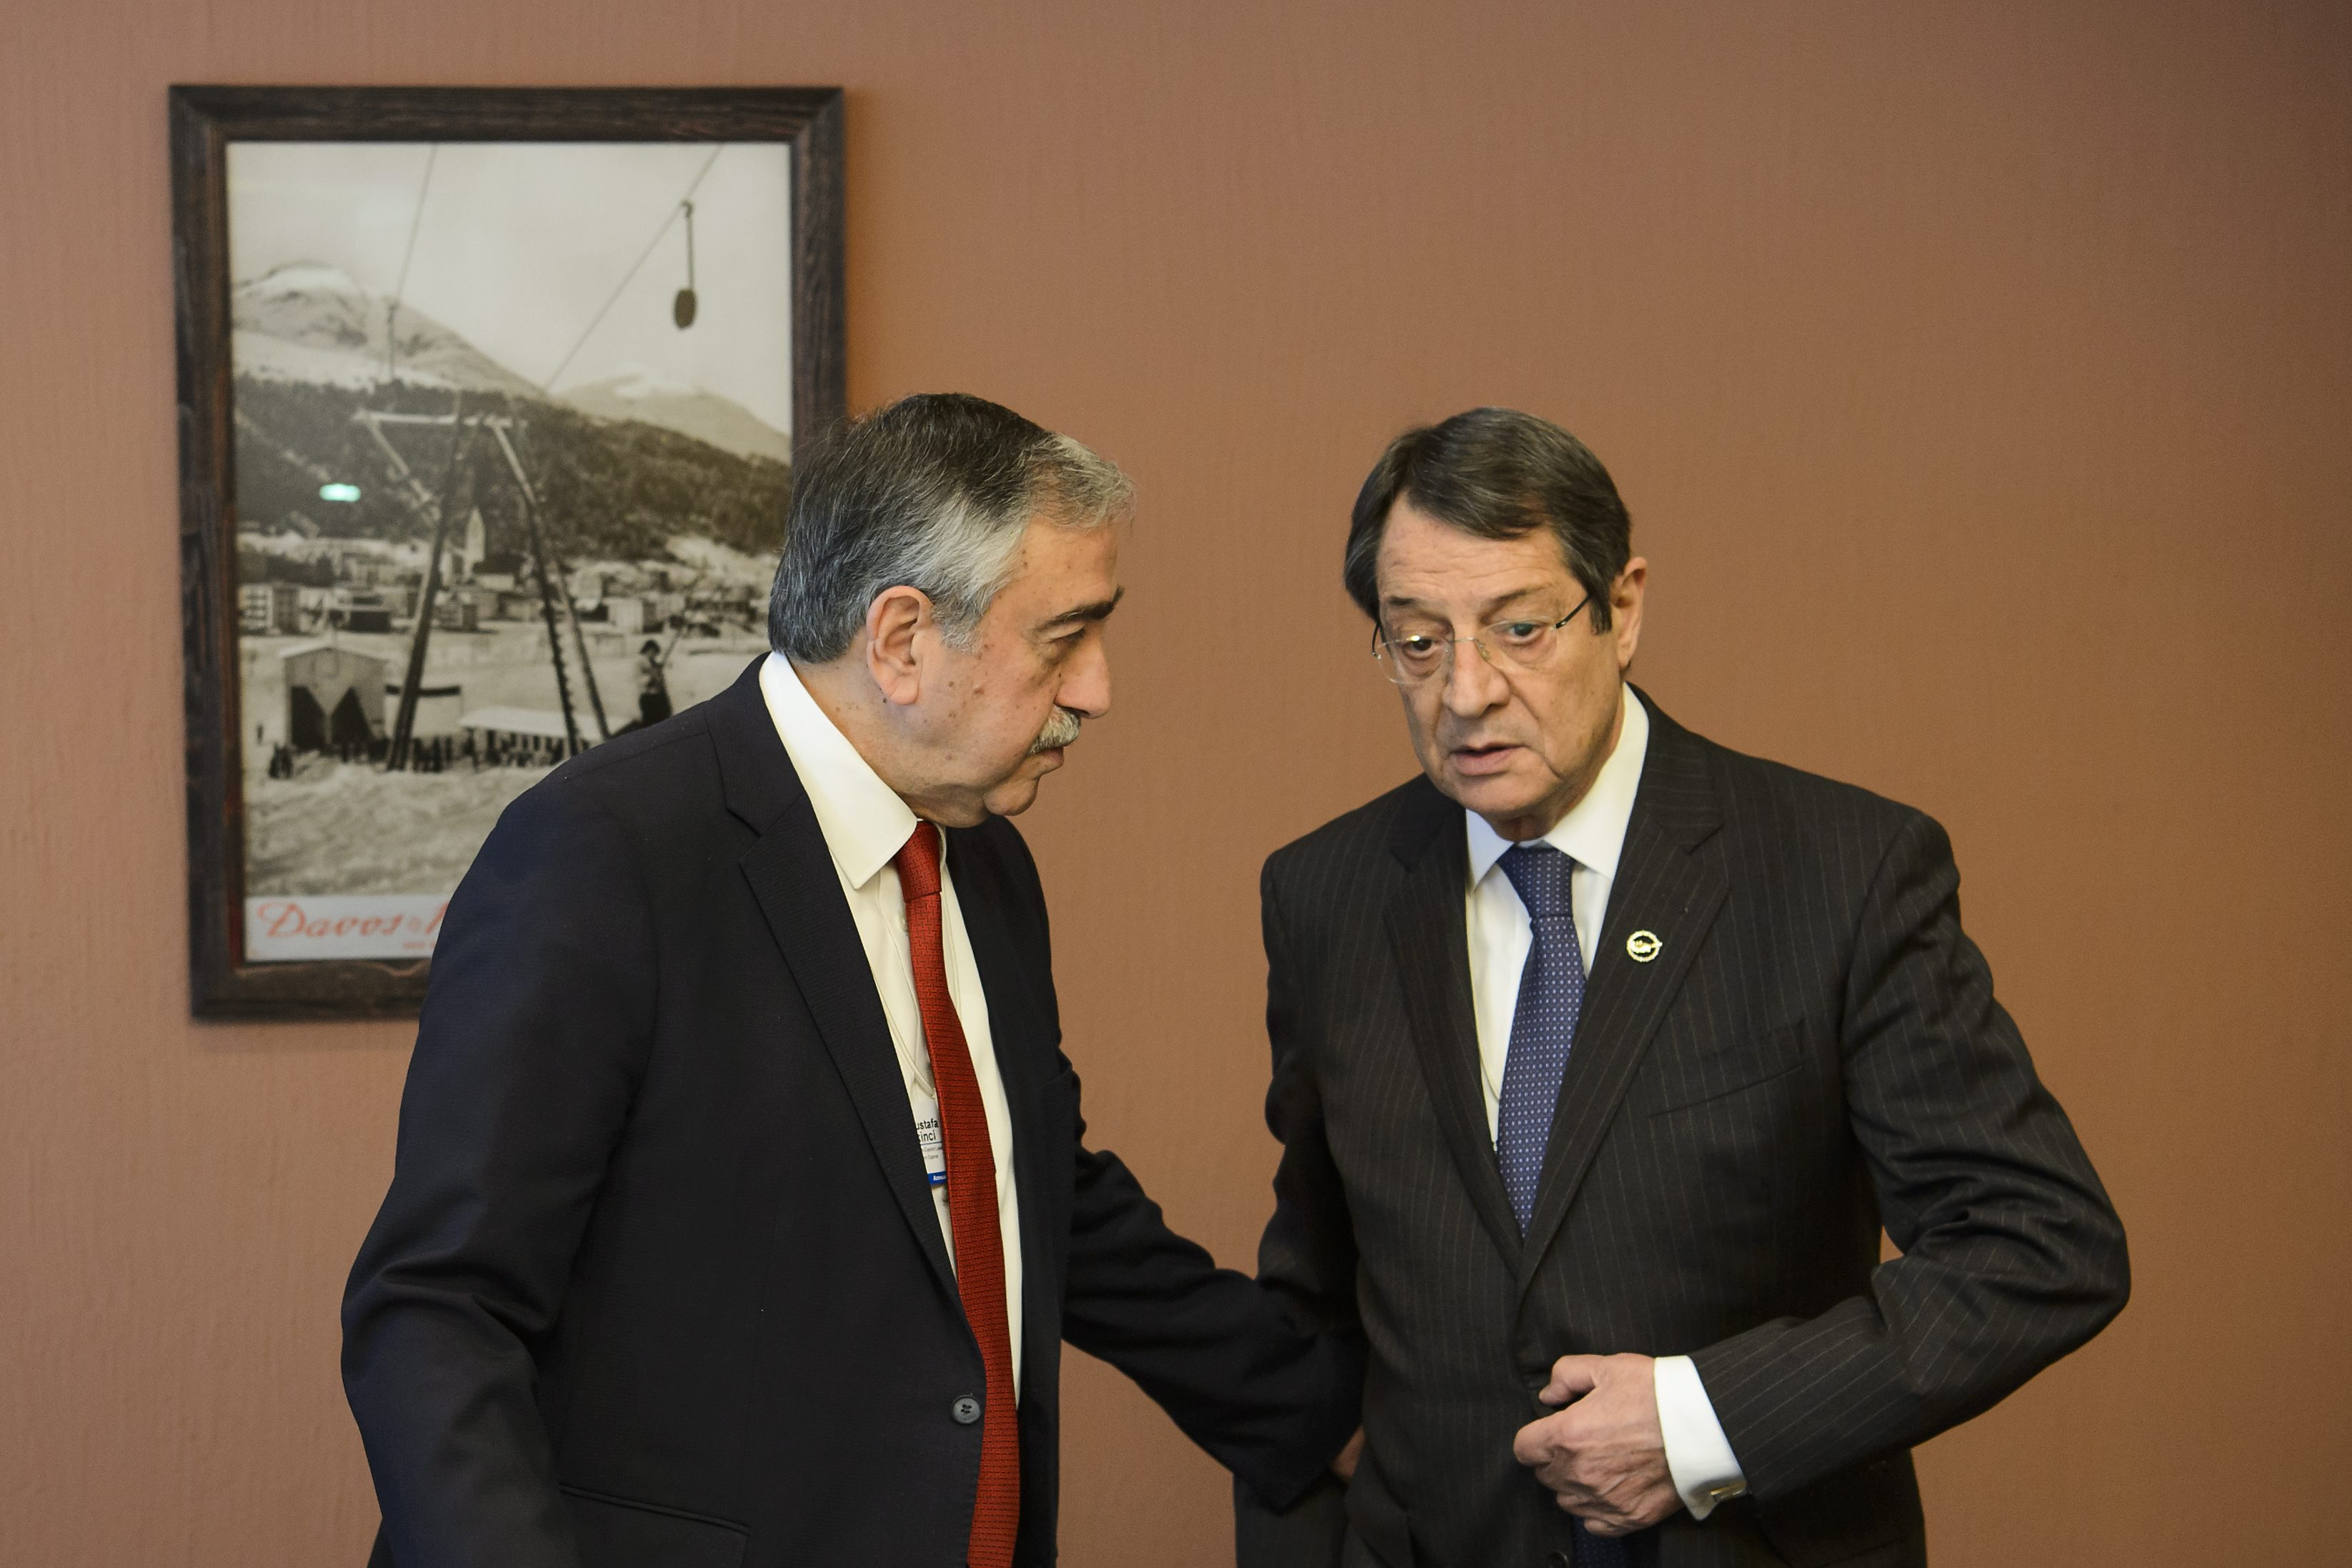 epa05115854 Turkish Cypriot leader, Mustafa Akinci, (L), talks to Greek Cypriot leader, Nicos Anastasiades, (R), during a bilateral meeting at the 46th Annual Meeting of the World Economic Forum, WEF, in Davos, Switzerland, 21 January 2016. The overarching theme of the Meeting, which takes place from 20 to 23 January, is 'Mastering the Fourth Industrial Revolution.' EPA/JEAN-CHRISTOPHE BOTT